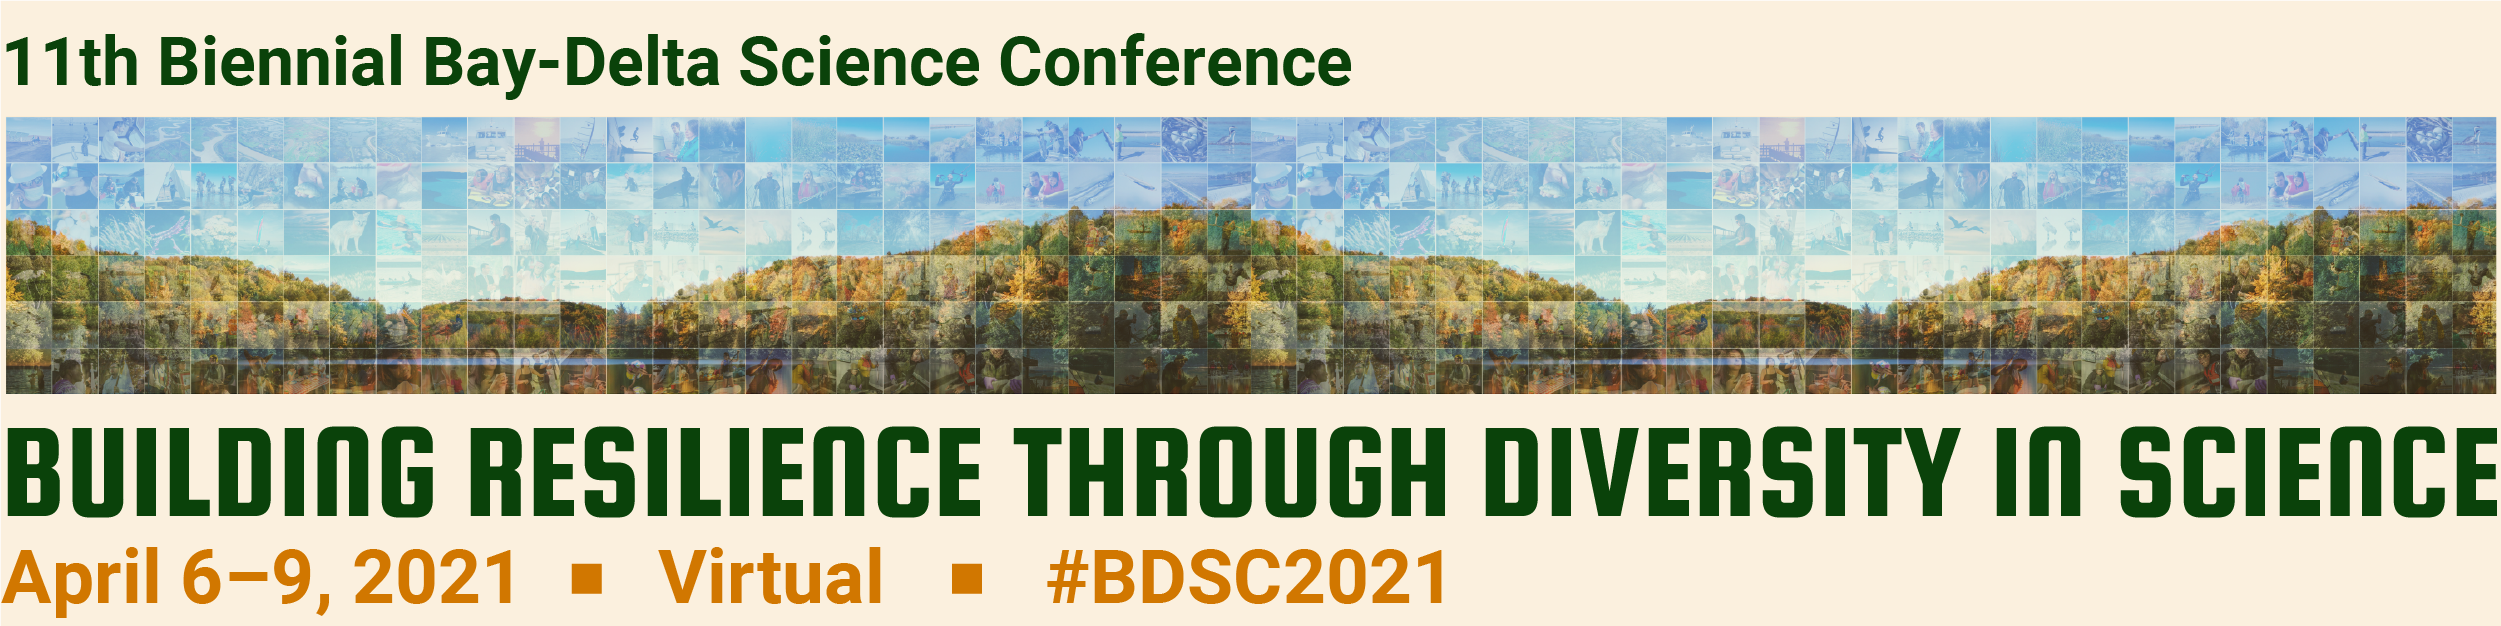 2021 Bay-Delta Science Conference.